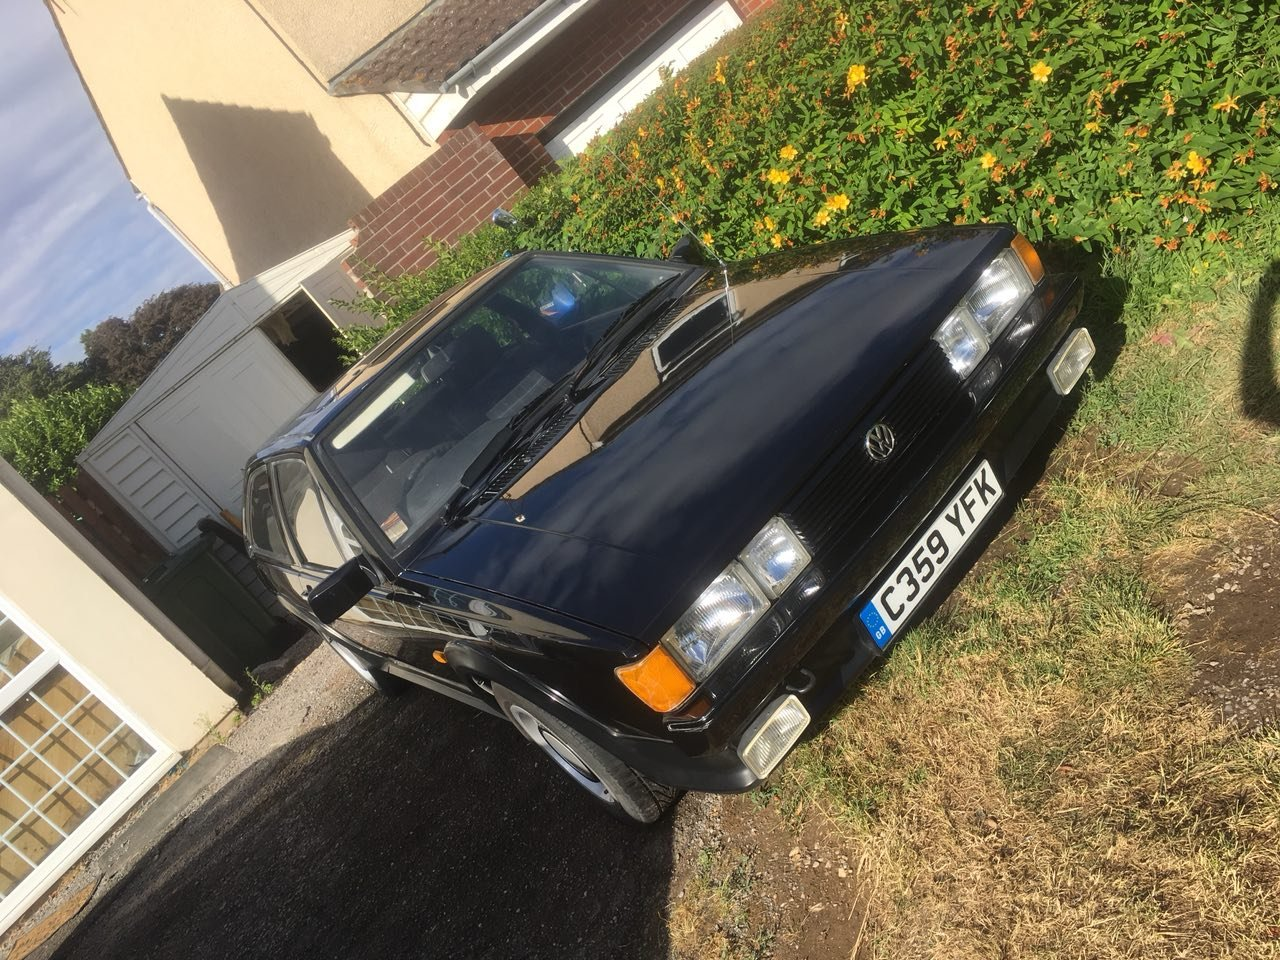 1986 Scirocco Mk2 GT S for sale (Low mileage) For Sale (picture 1 of 6)